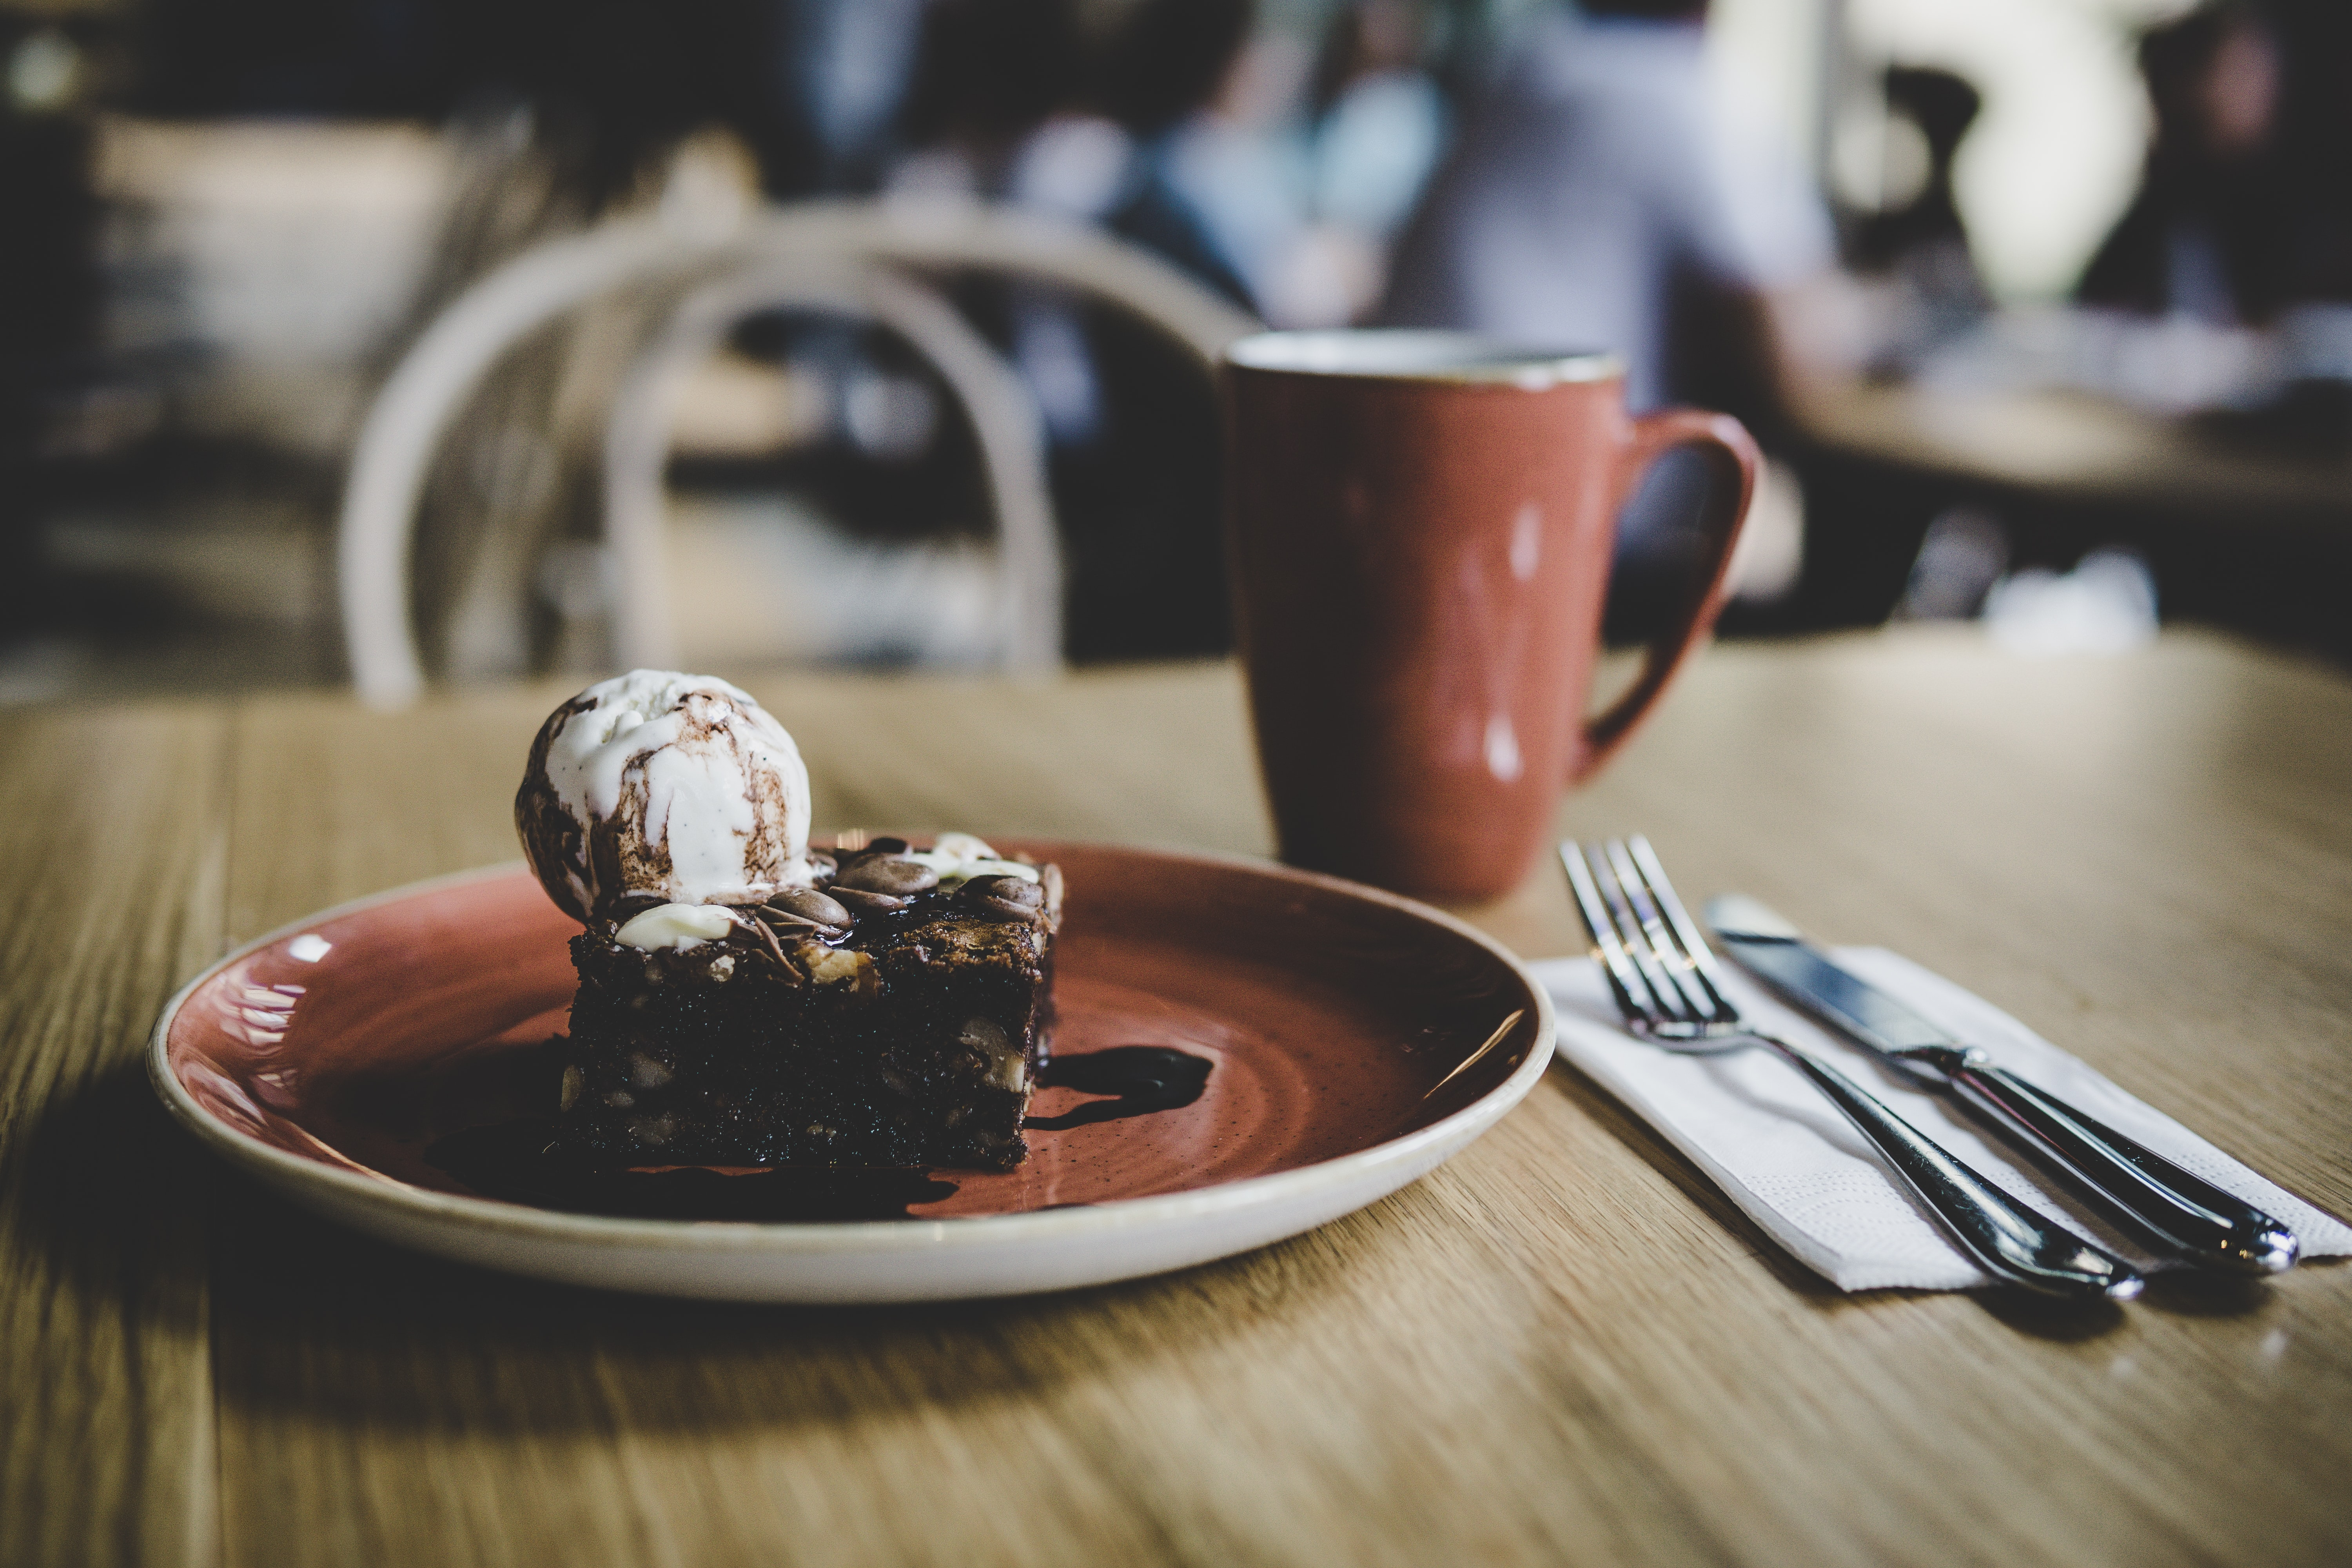 A chocolate nut brownie topped with vanilla ice cream and chocolate syrup beside a mug of coffee and cutlery on a wooden table